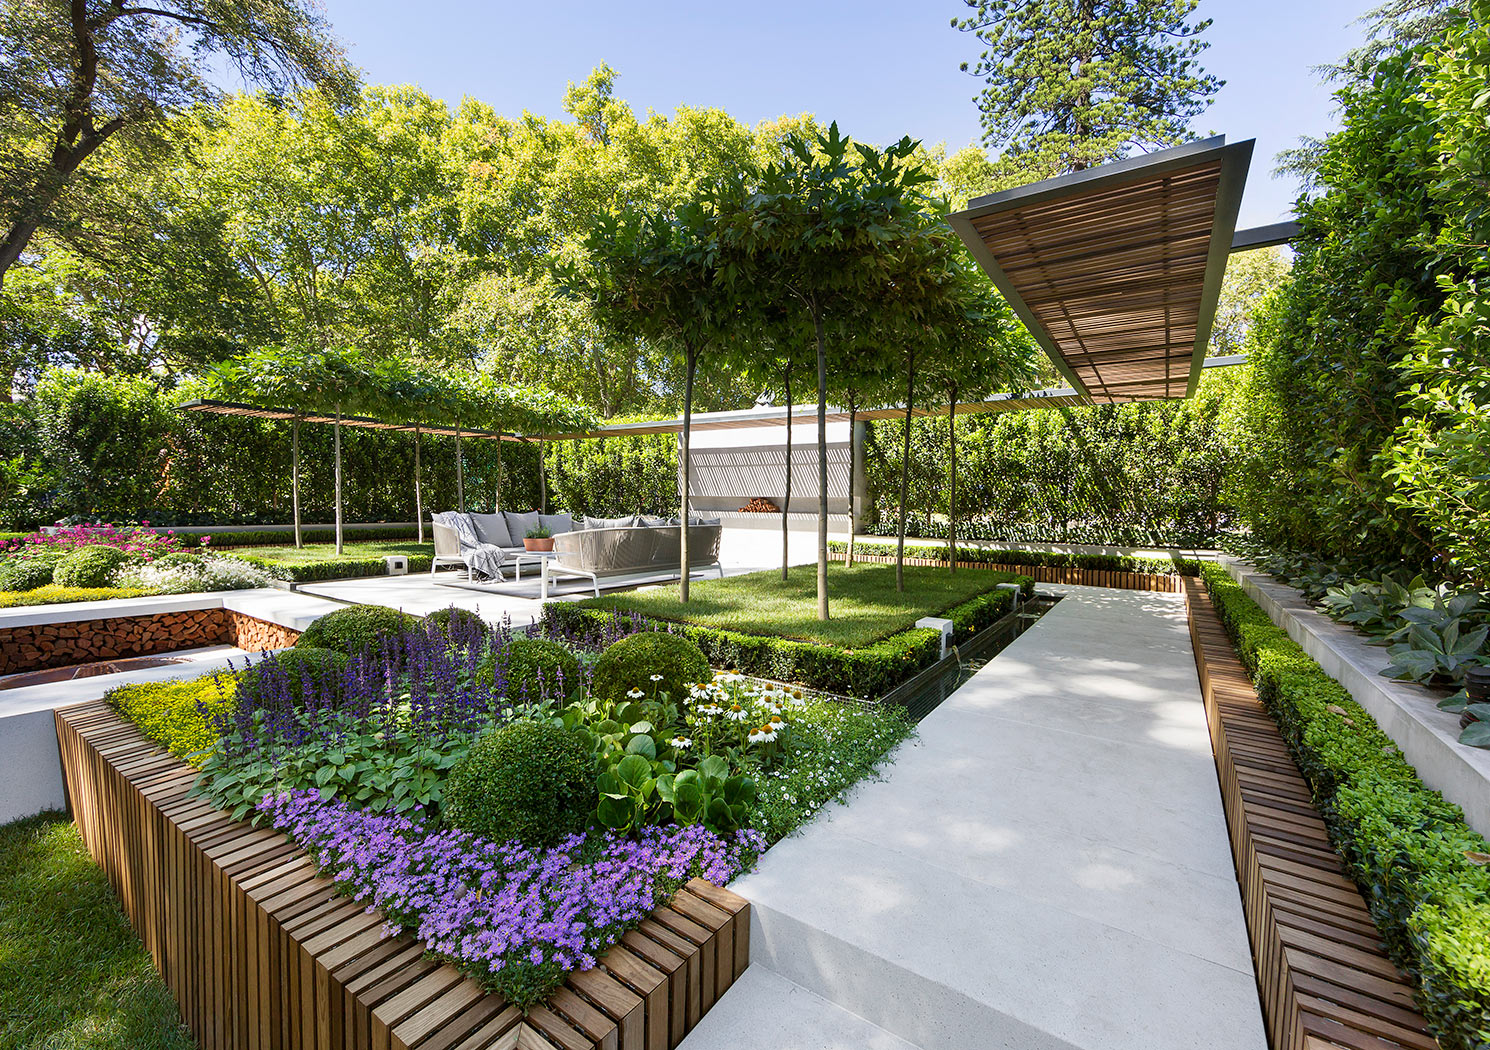 Landscape garden designer melbourne nathan burkett design for Landscape garden design ideas